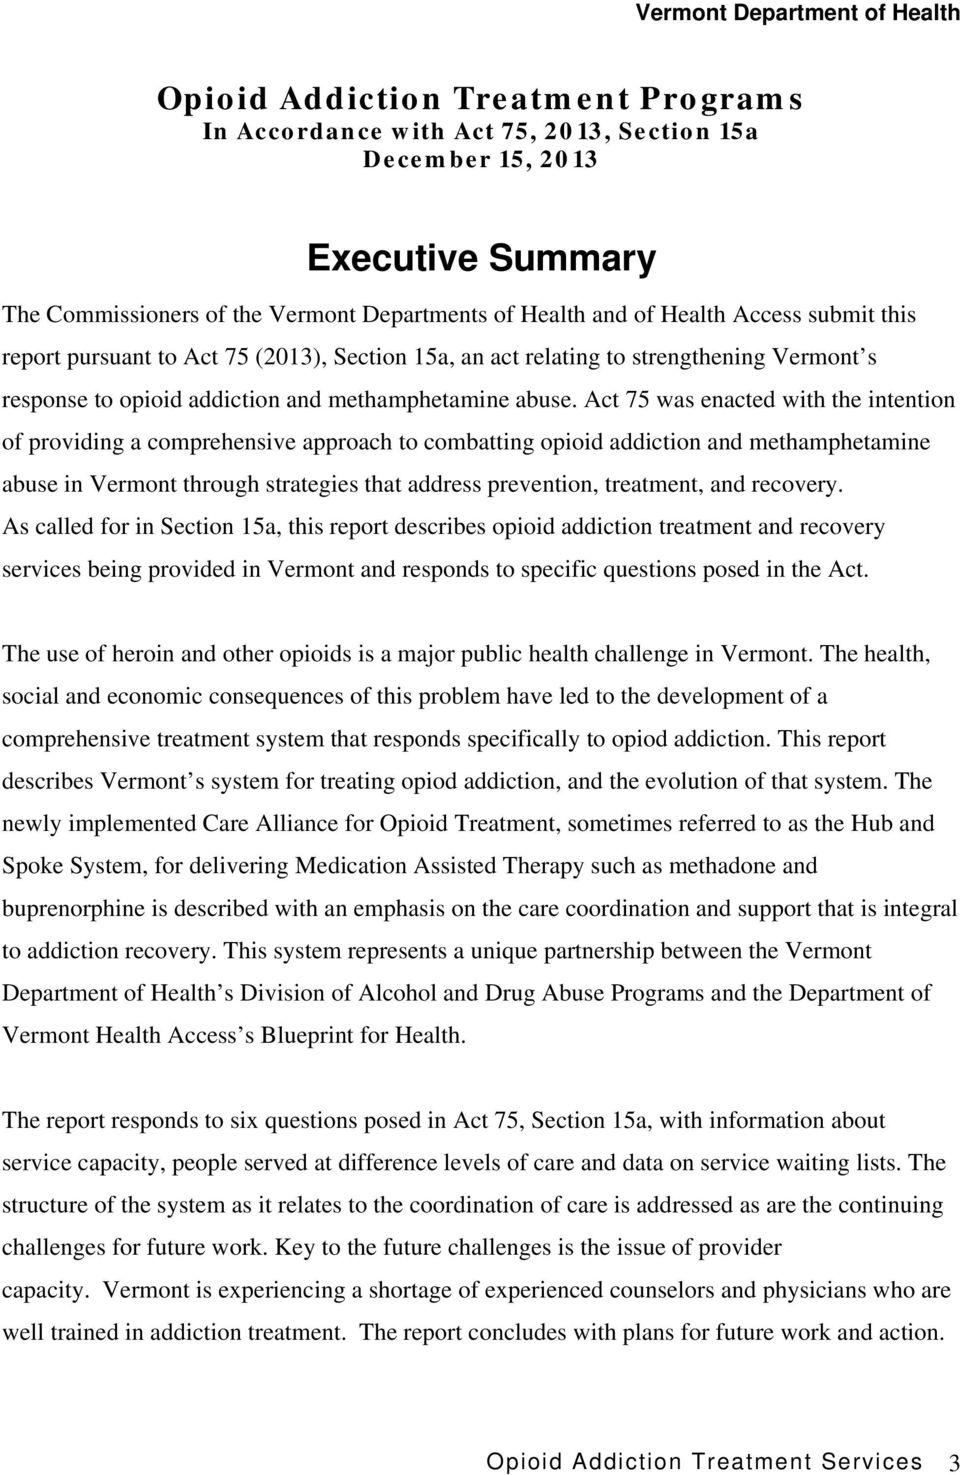 Act 75 was enacted with the intention of providing a comprehensive approach to combatting opioid addiction and methamphetamine abuse in Vermont through strategies that address prevention, treatment,